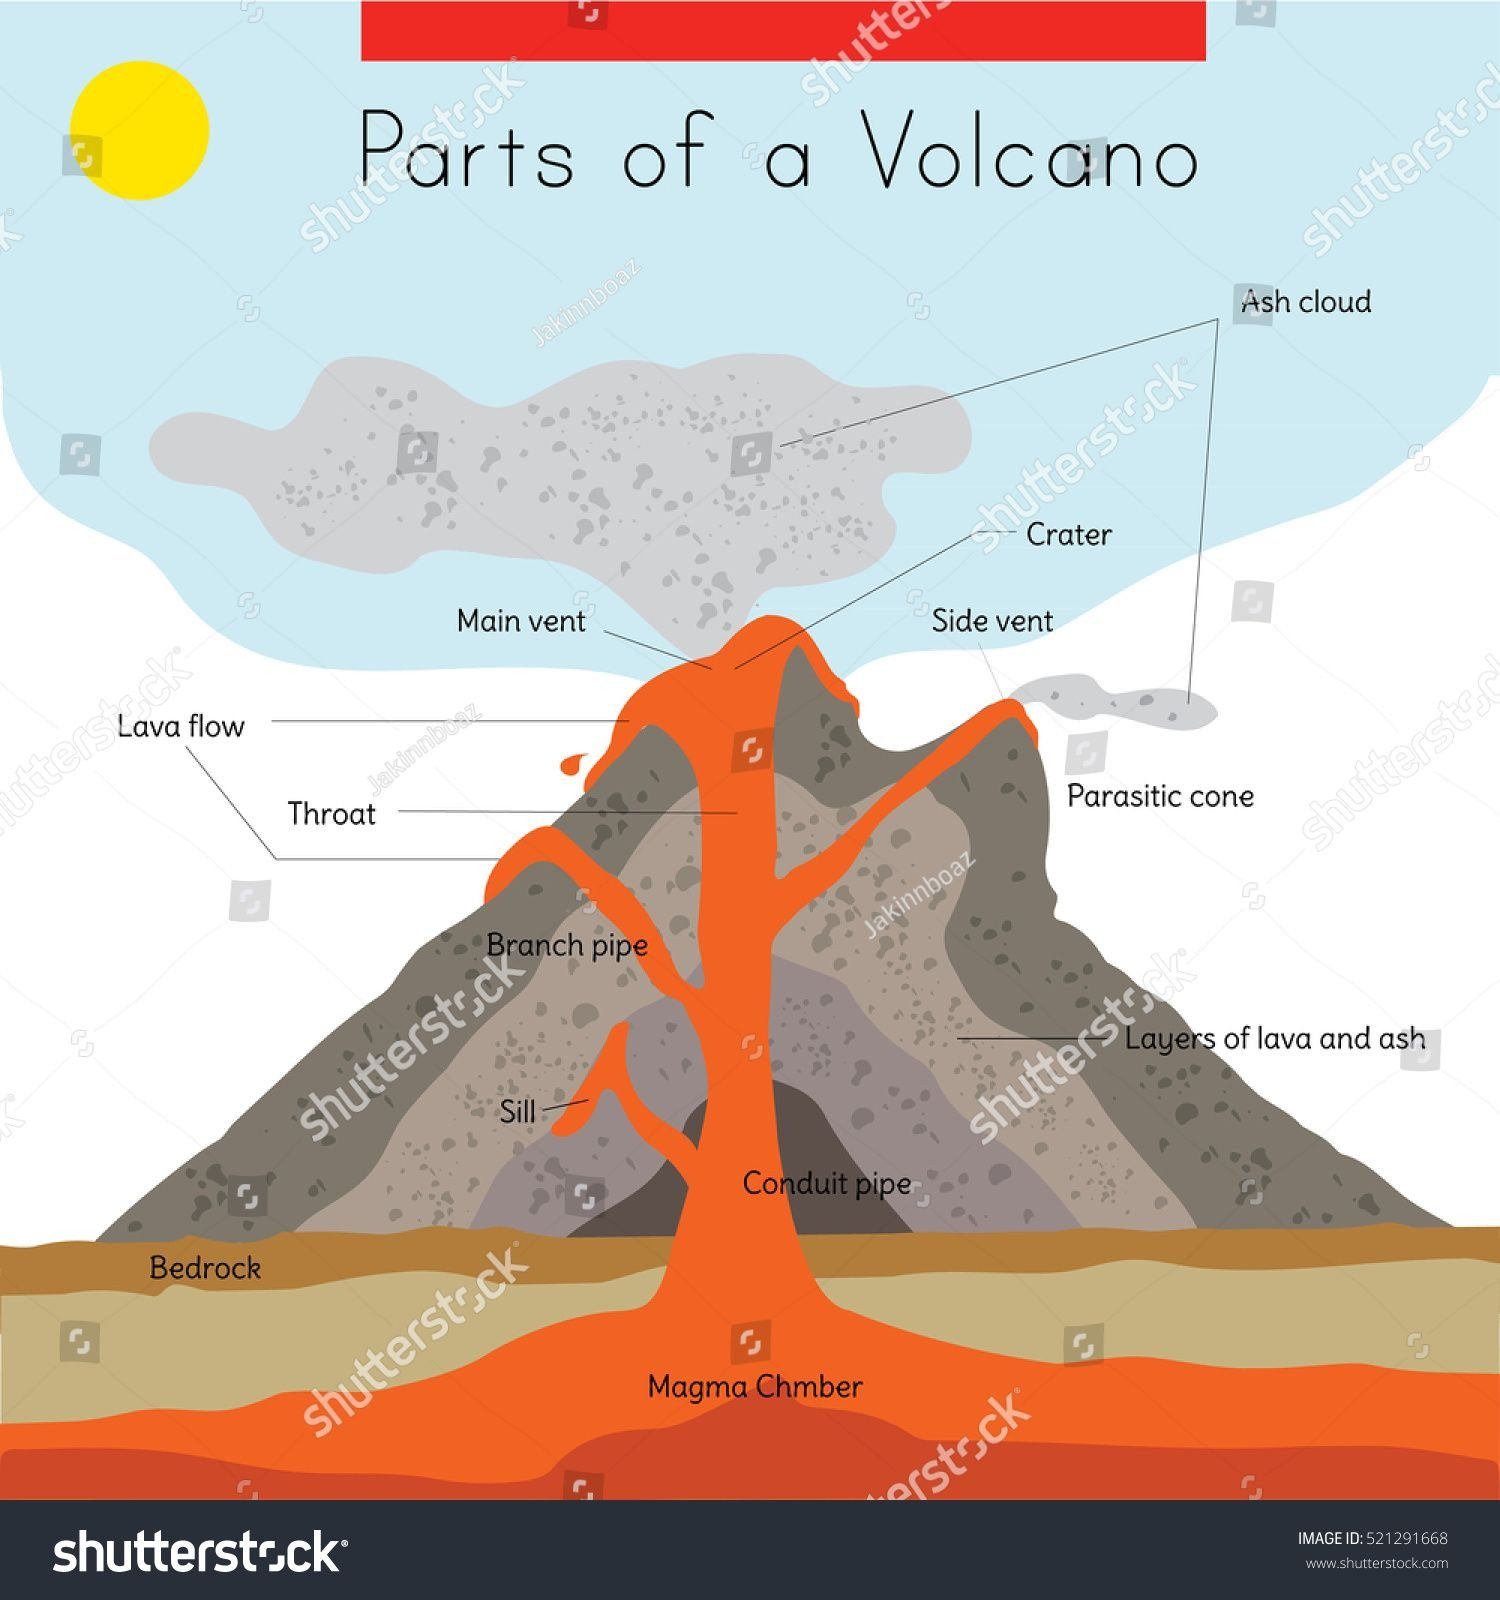 Volcano Diagram Worksheets A Diagram Of the Interior and Exterior Parts Of A Volcano